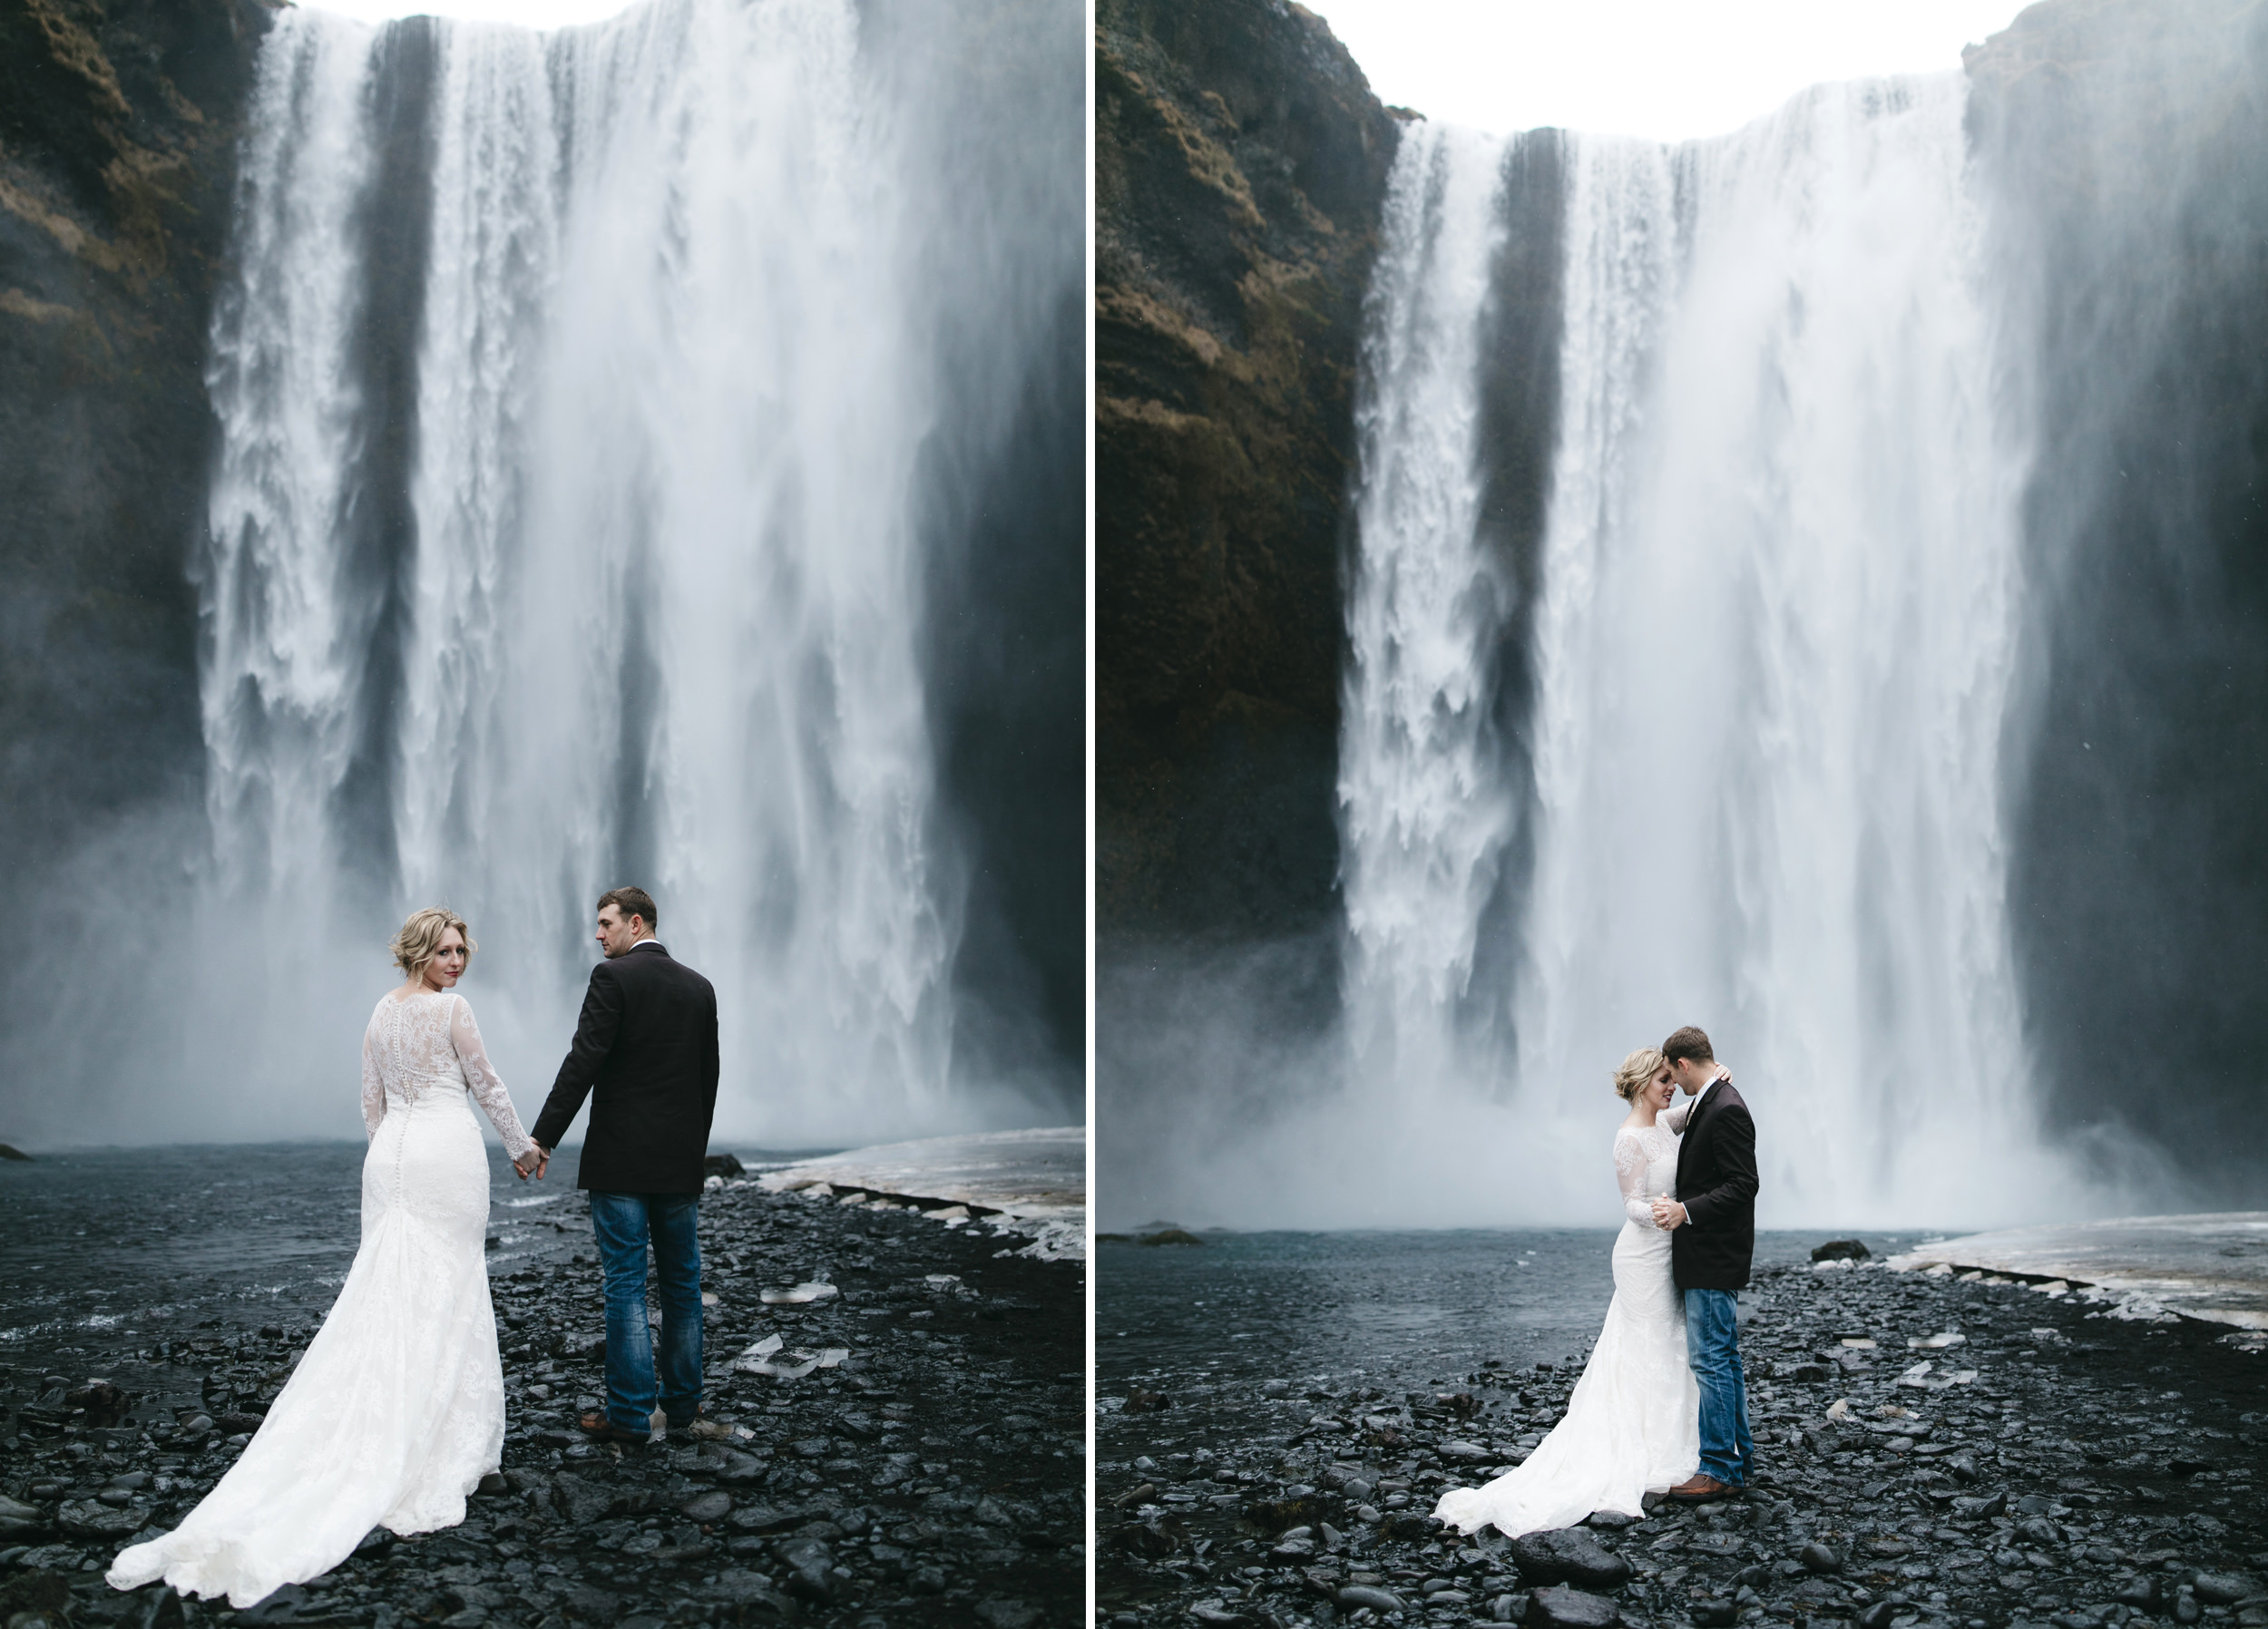 A couple goes to Skogafoss to elope in front of a waterfall with Iceland Elopement Photographers Colby and Jess as their witnesses.